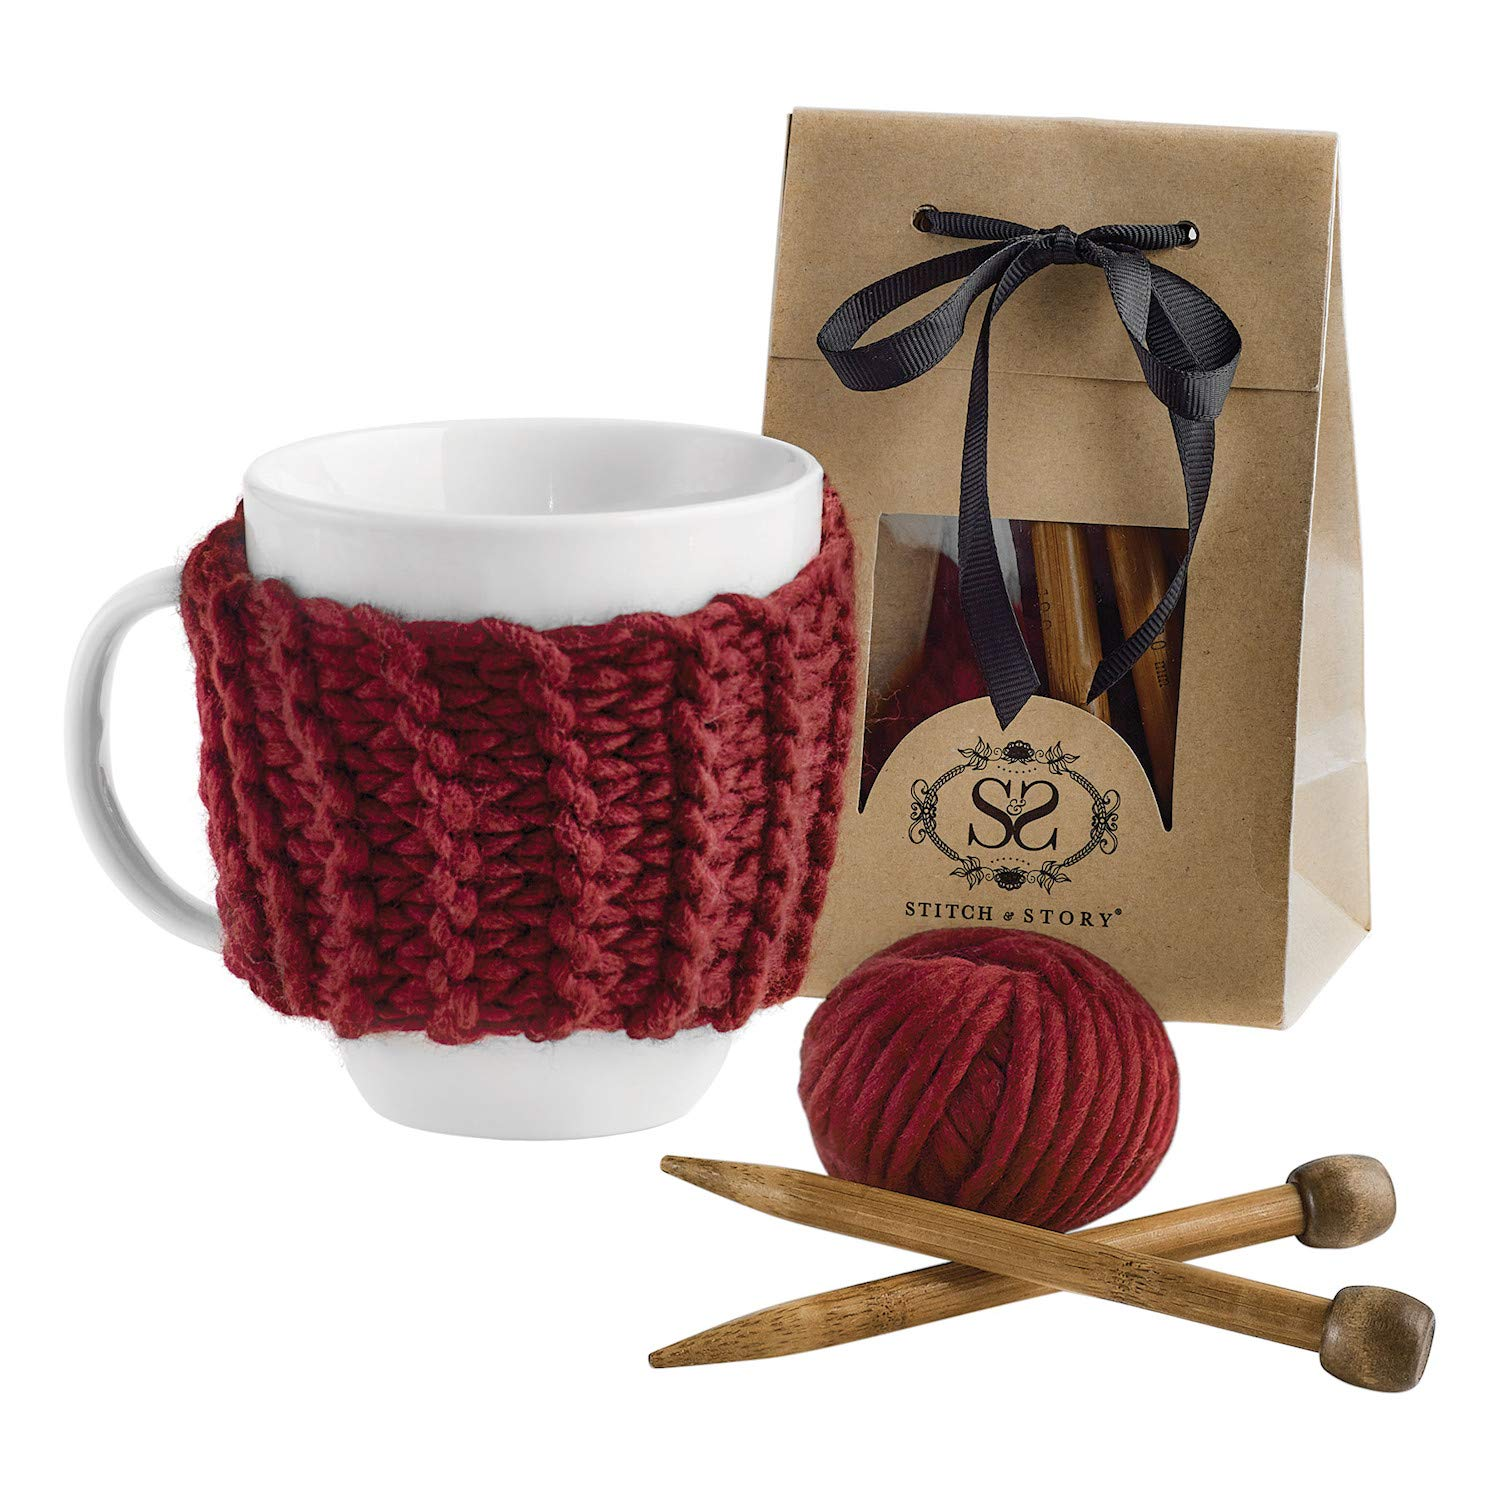 STITCH & STORY Cup Cozy Knitting Kit - Make Your Own Tea Coffee Cup Cosy 100% Merino Wool Yarn Knitting Needles Pattern